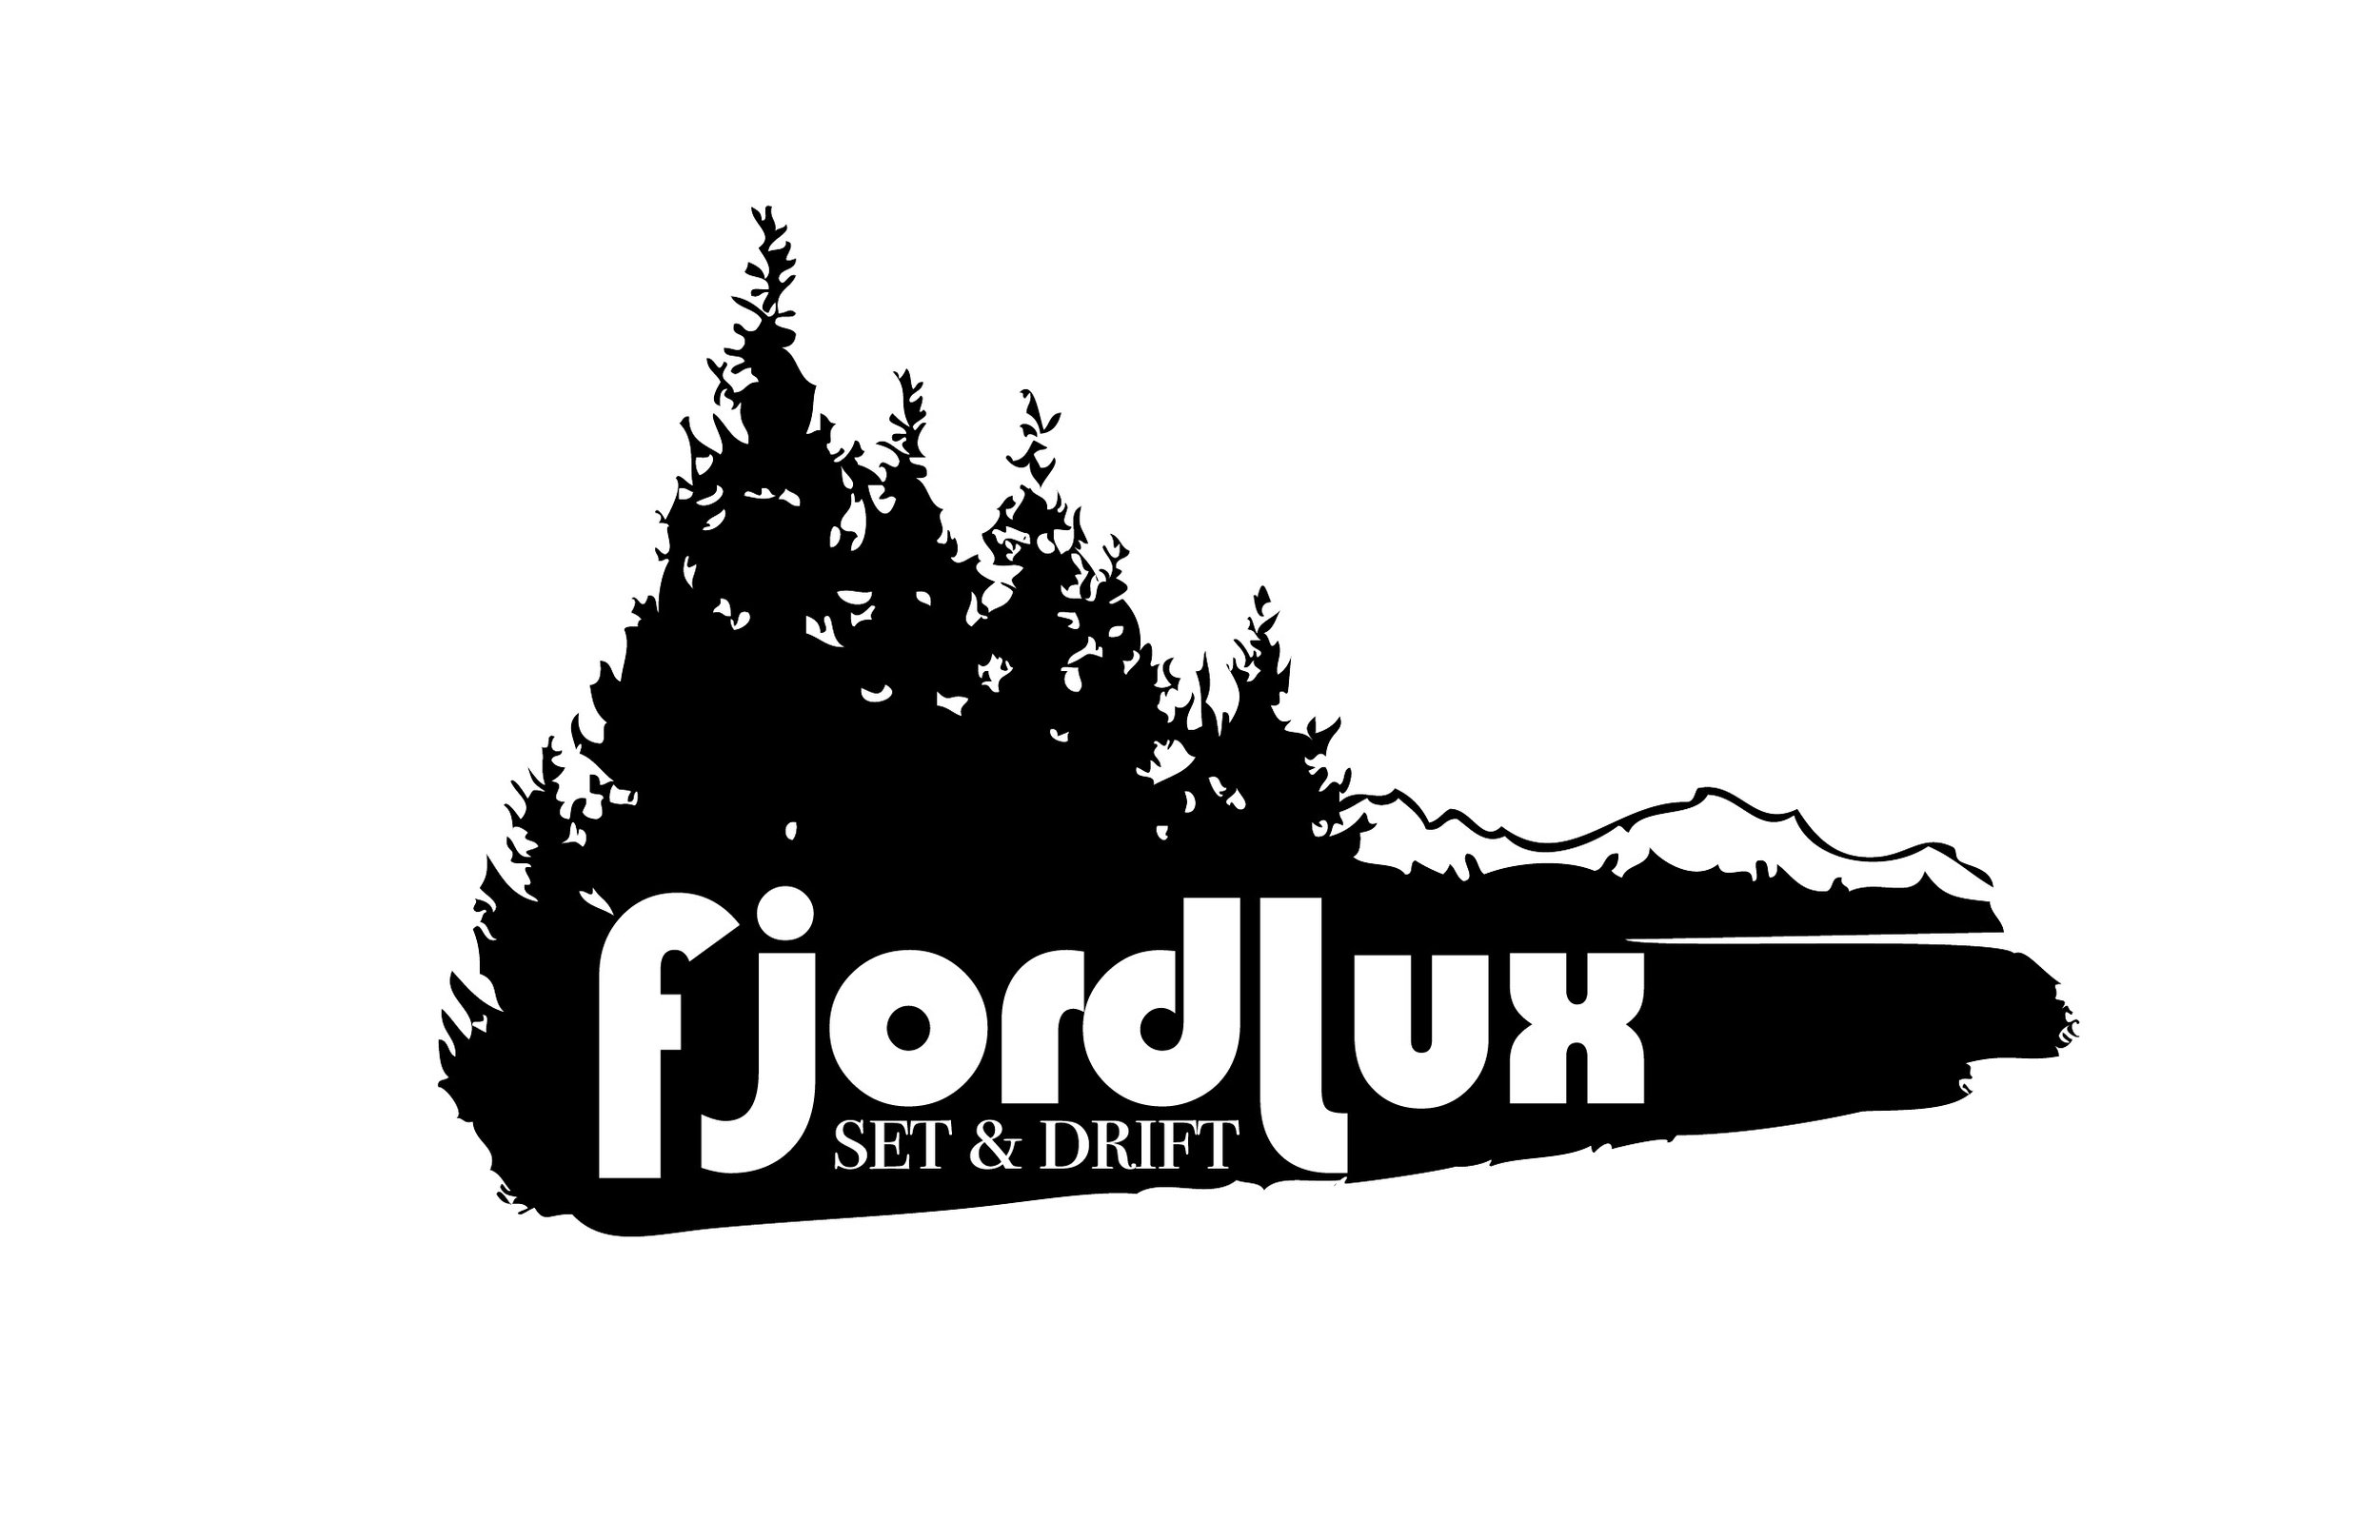 FjordLux 1color Vector(2).jpg